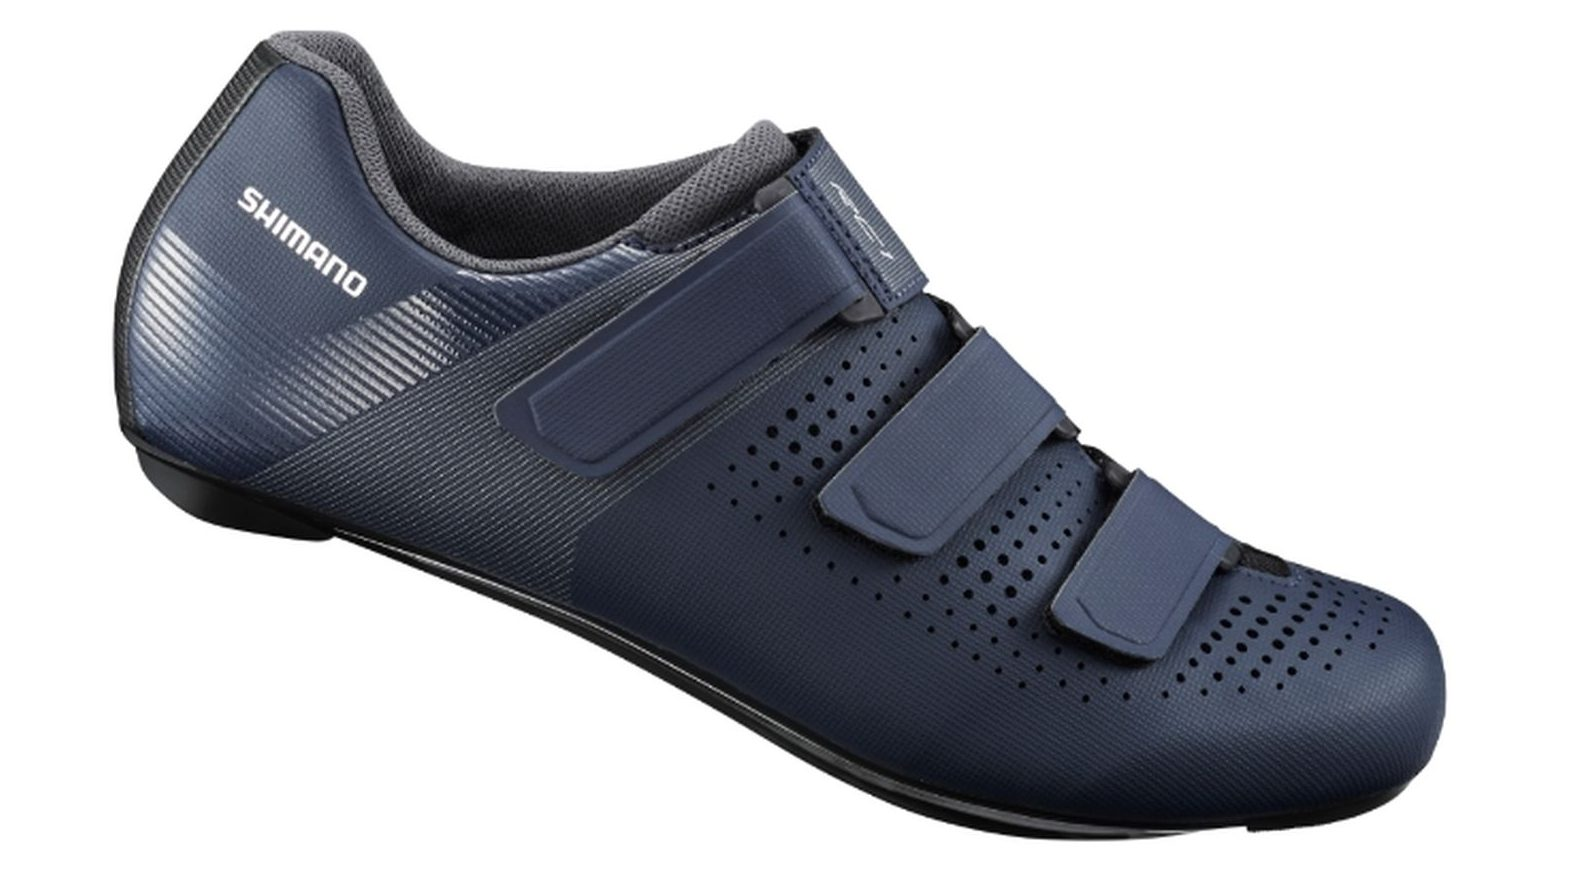 SHimano-RC100 best road shoes